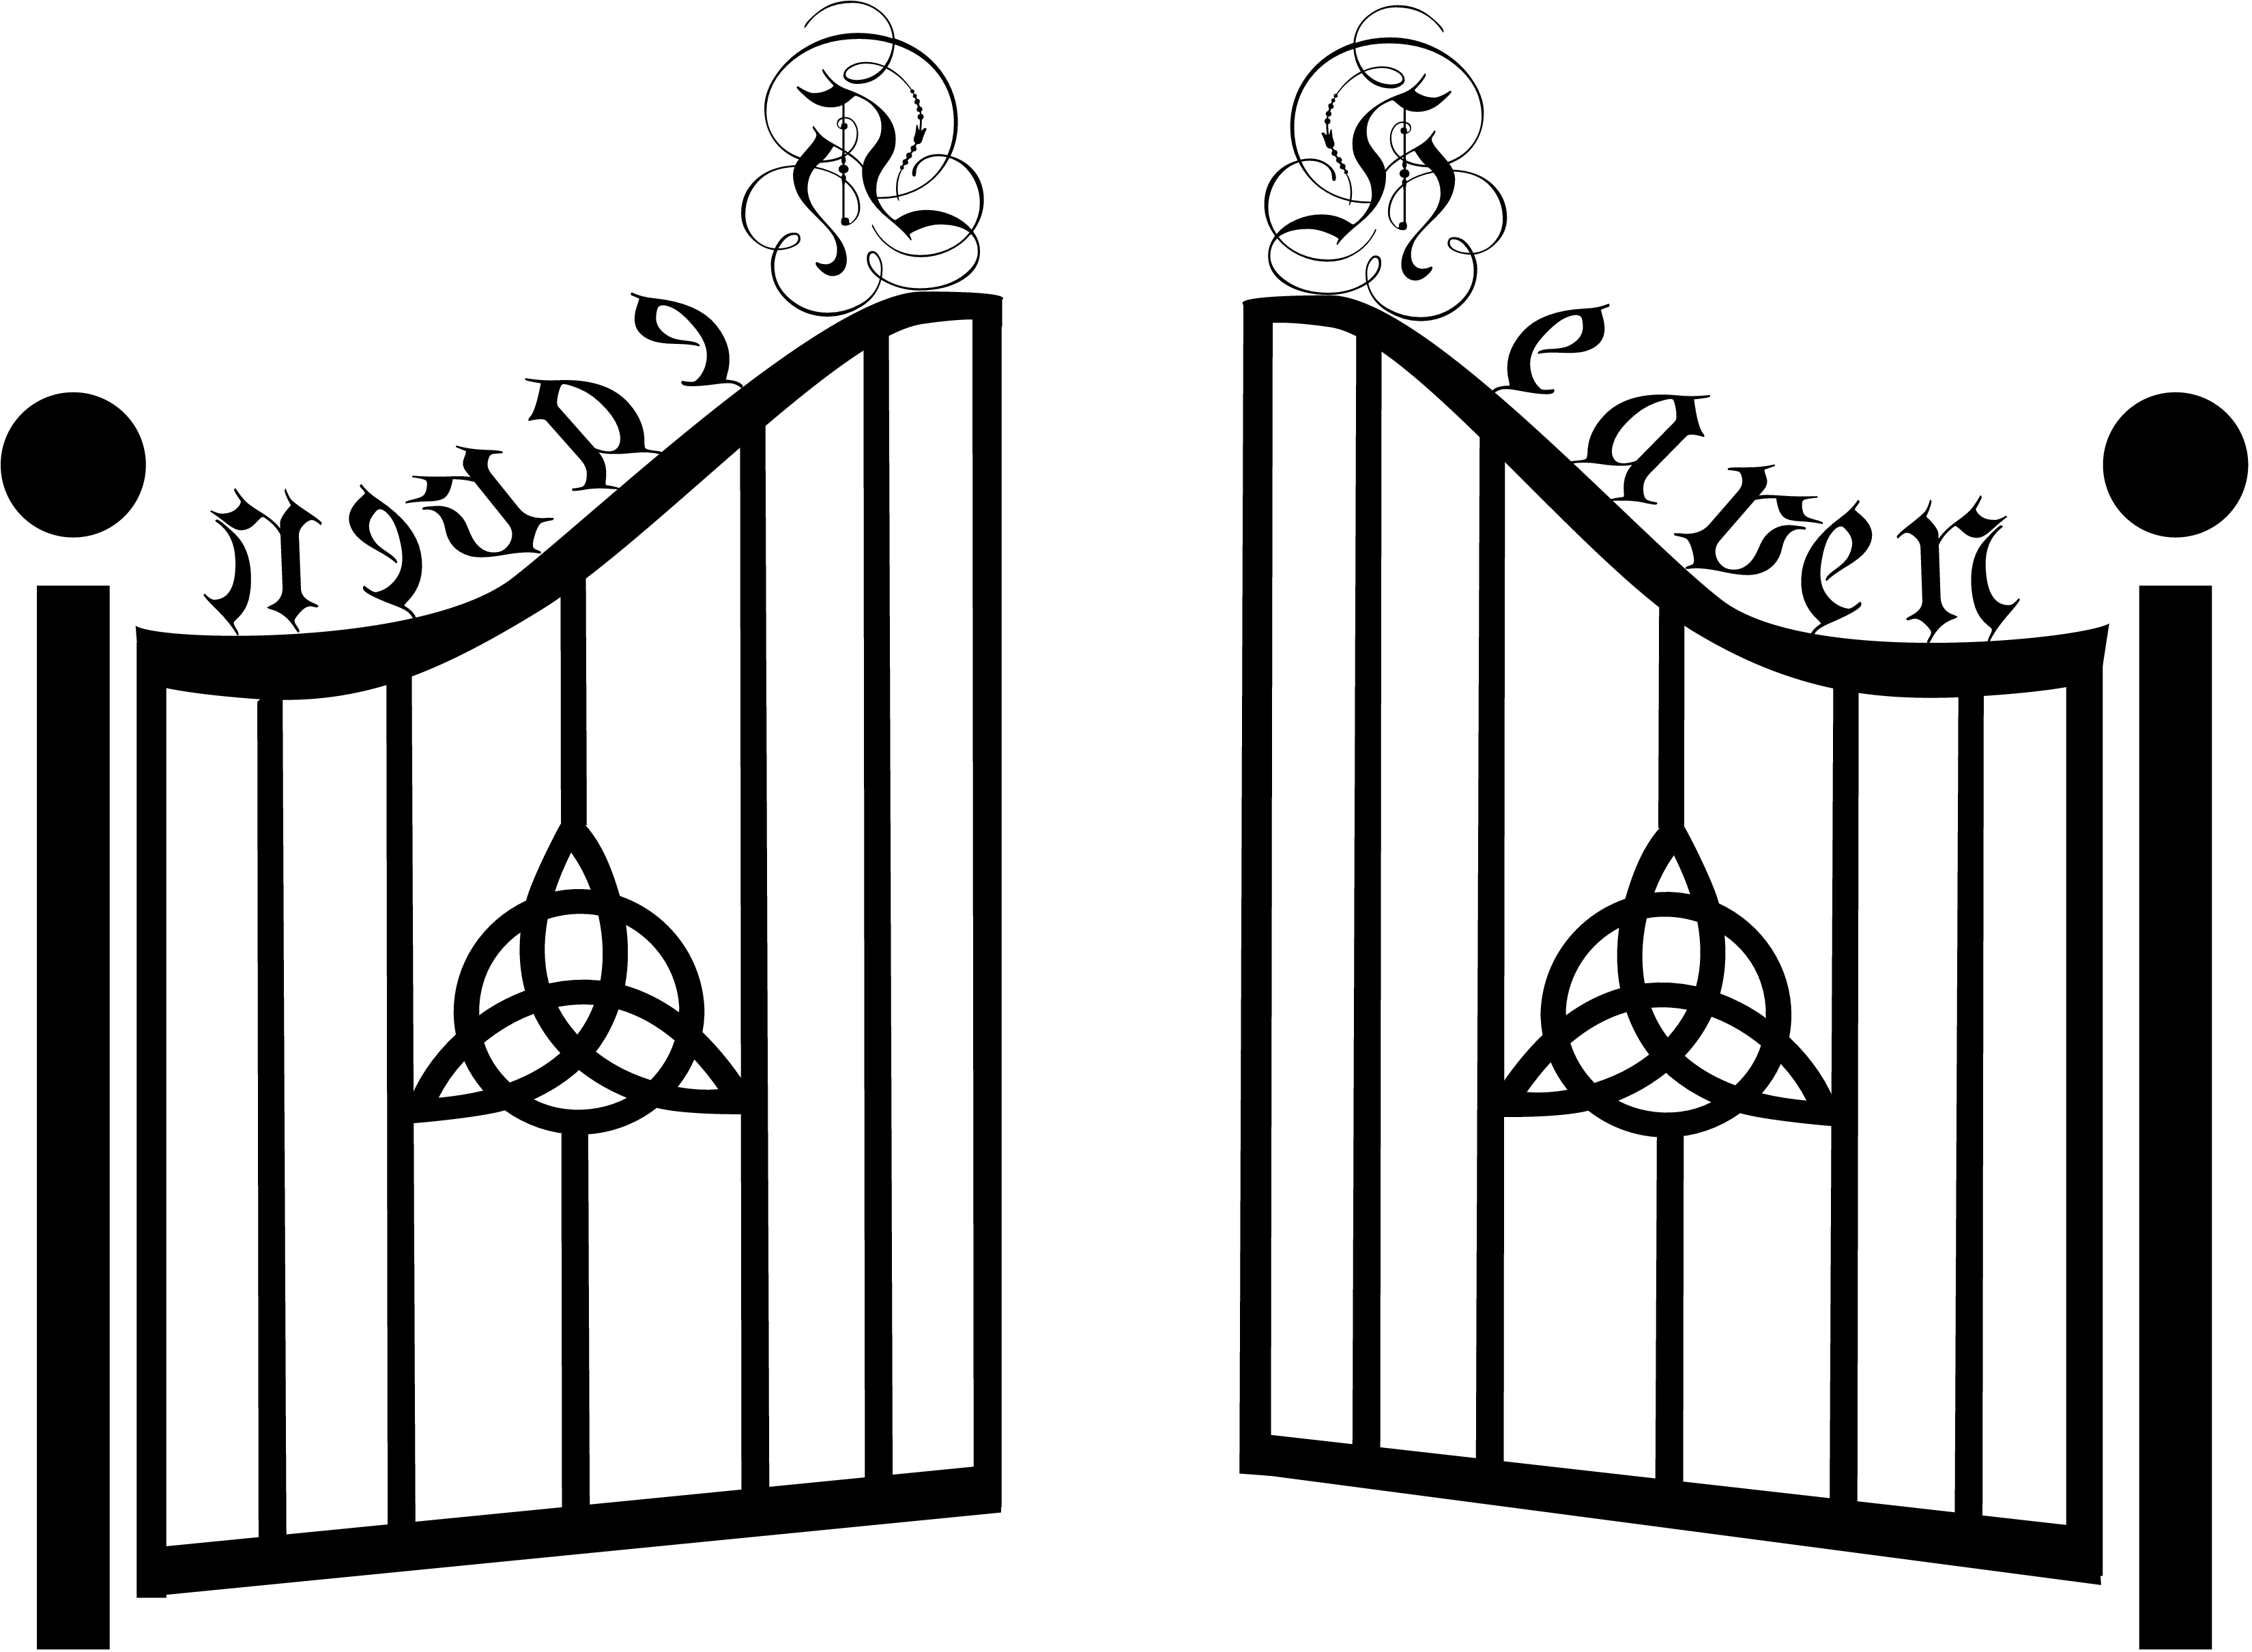 Gate Closed Clipart - Gate Clipart